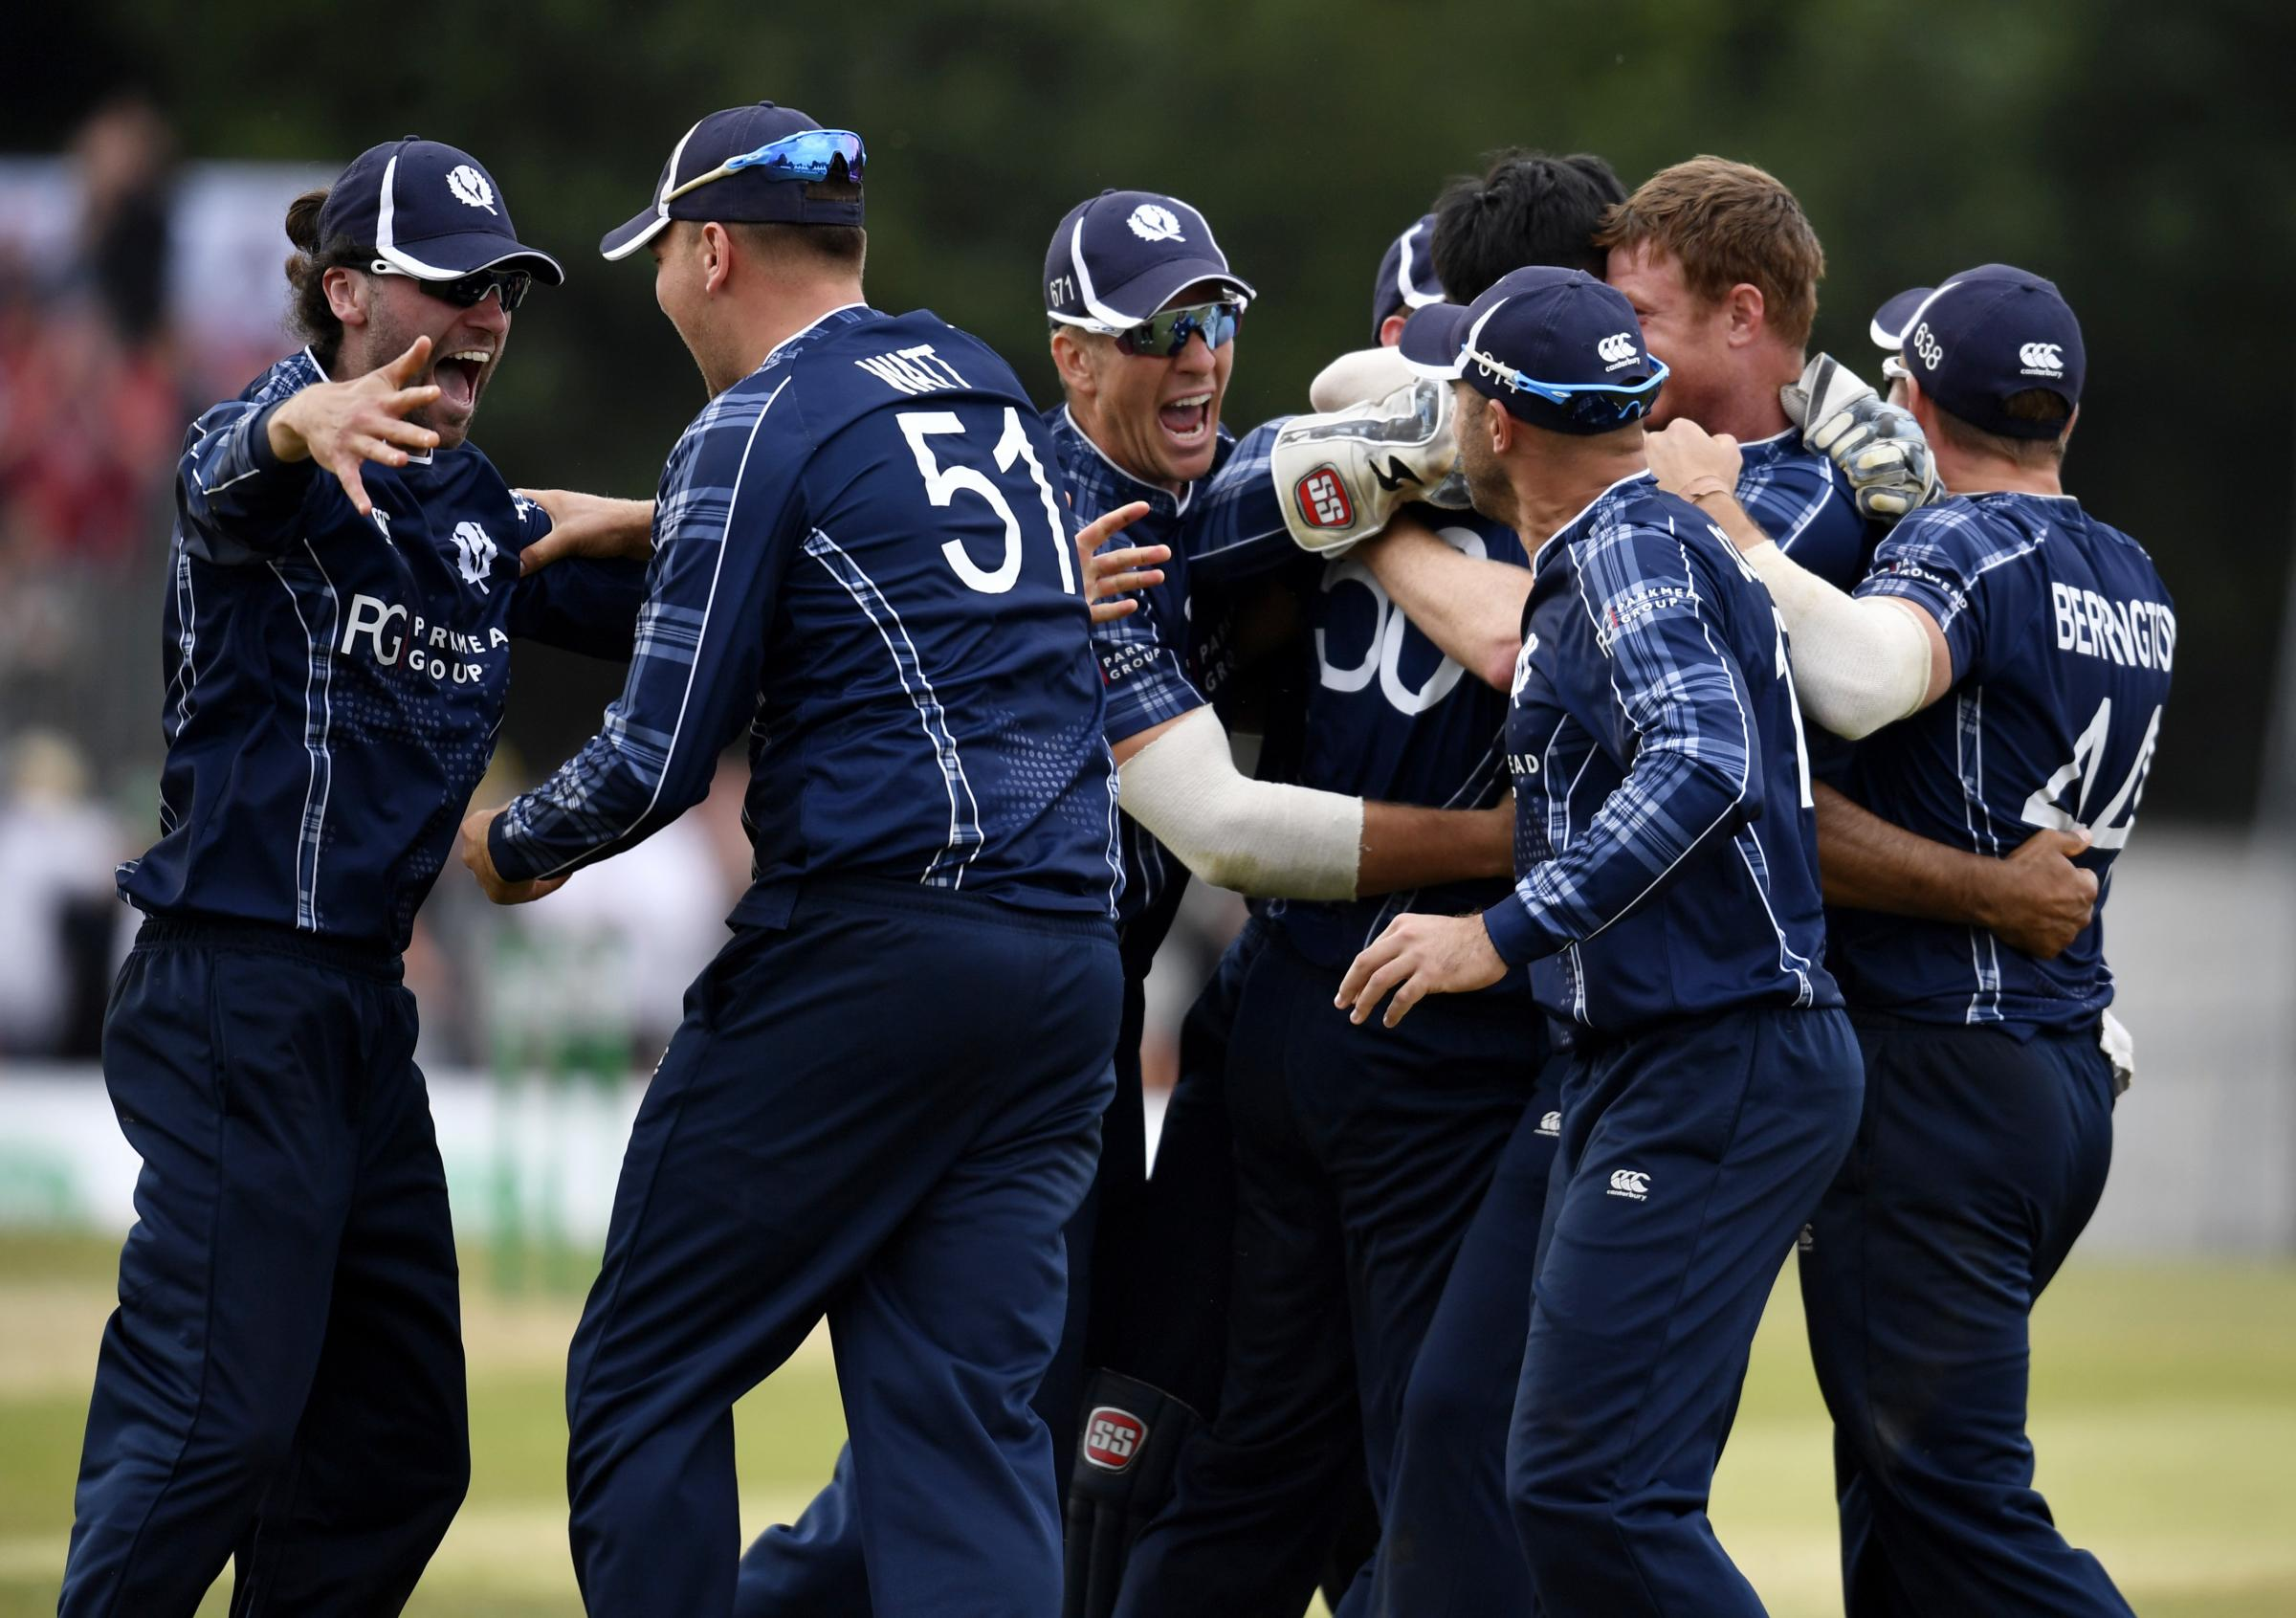 Scotland celebrate after beating England by six runs last June